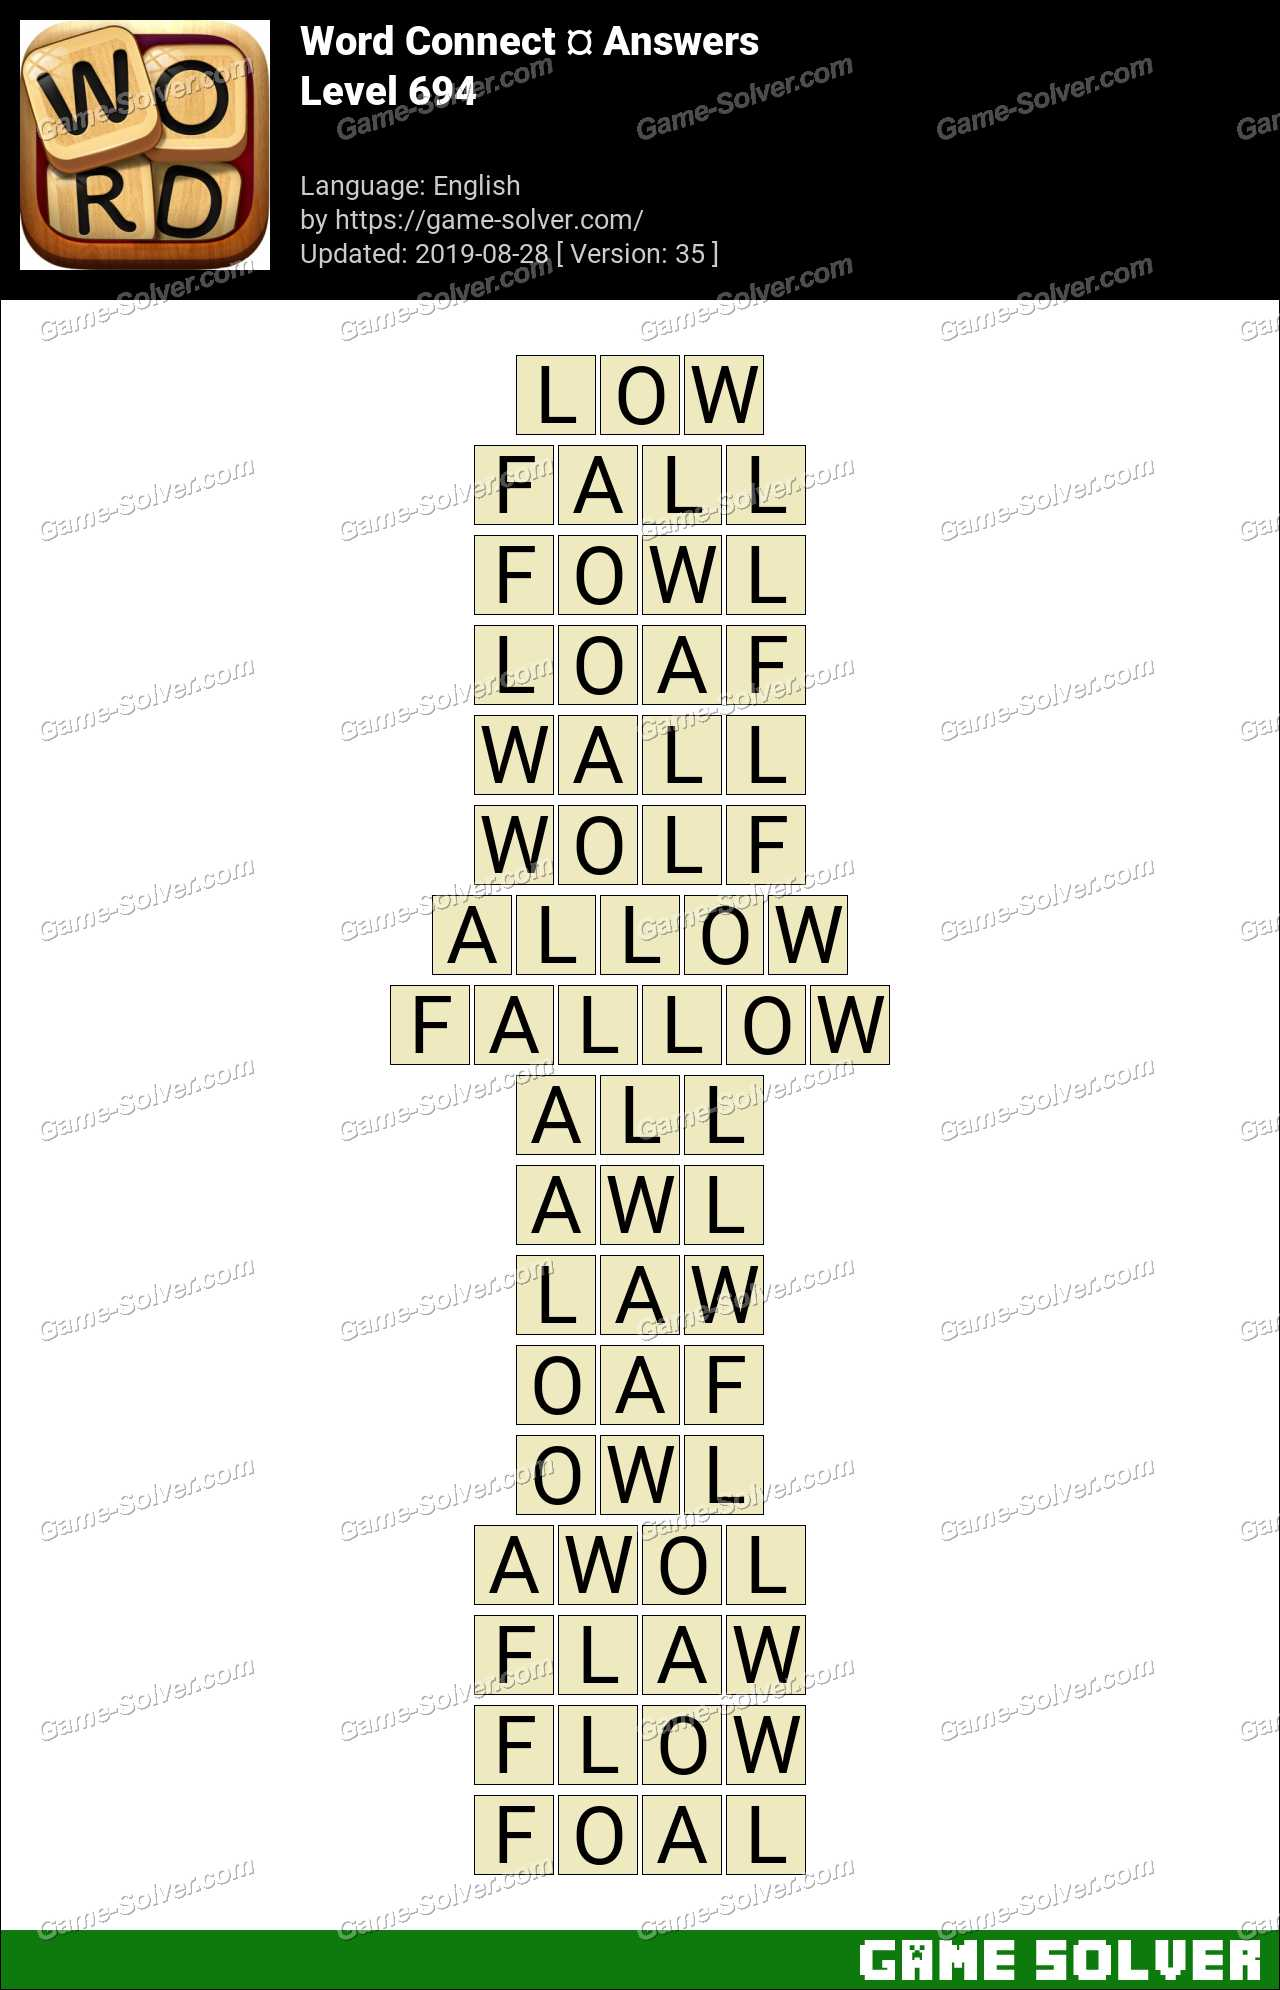 Word Connect Level 694 Answers